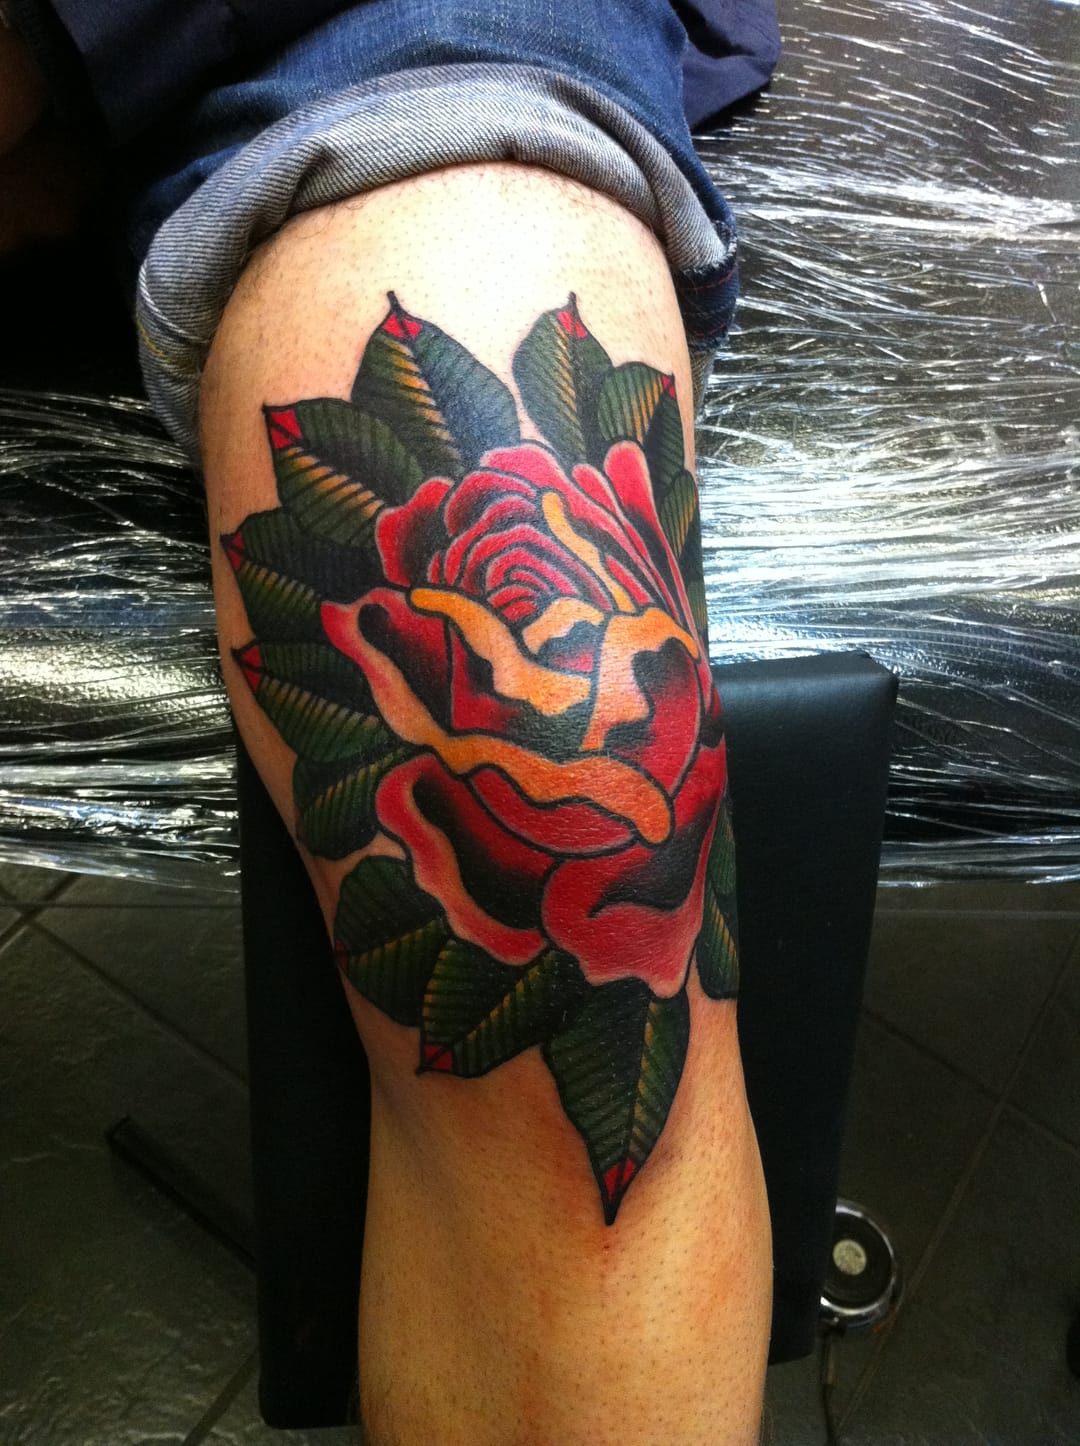 Awesome rose tattoo: photo from cockasnooktattoo